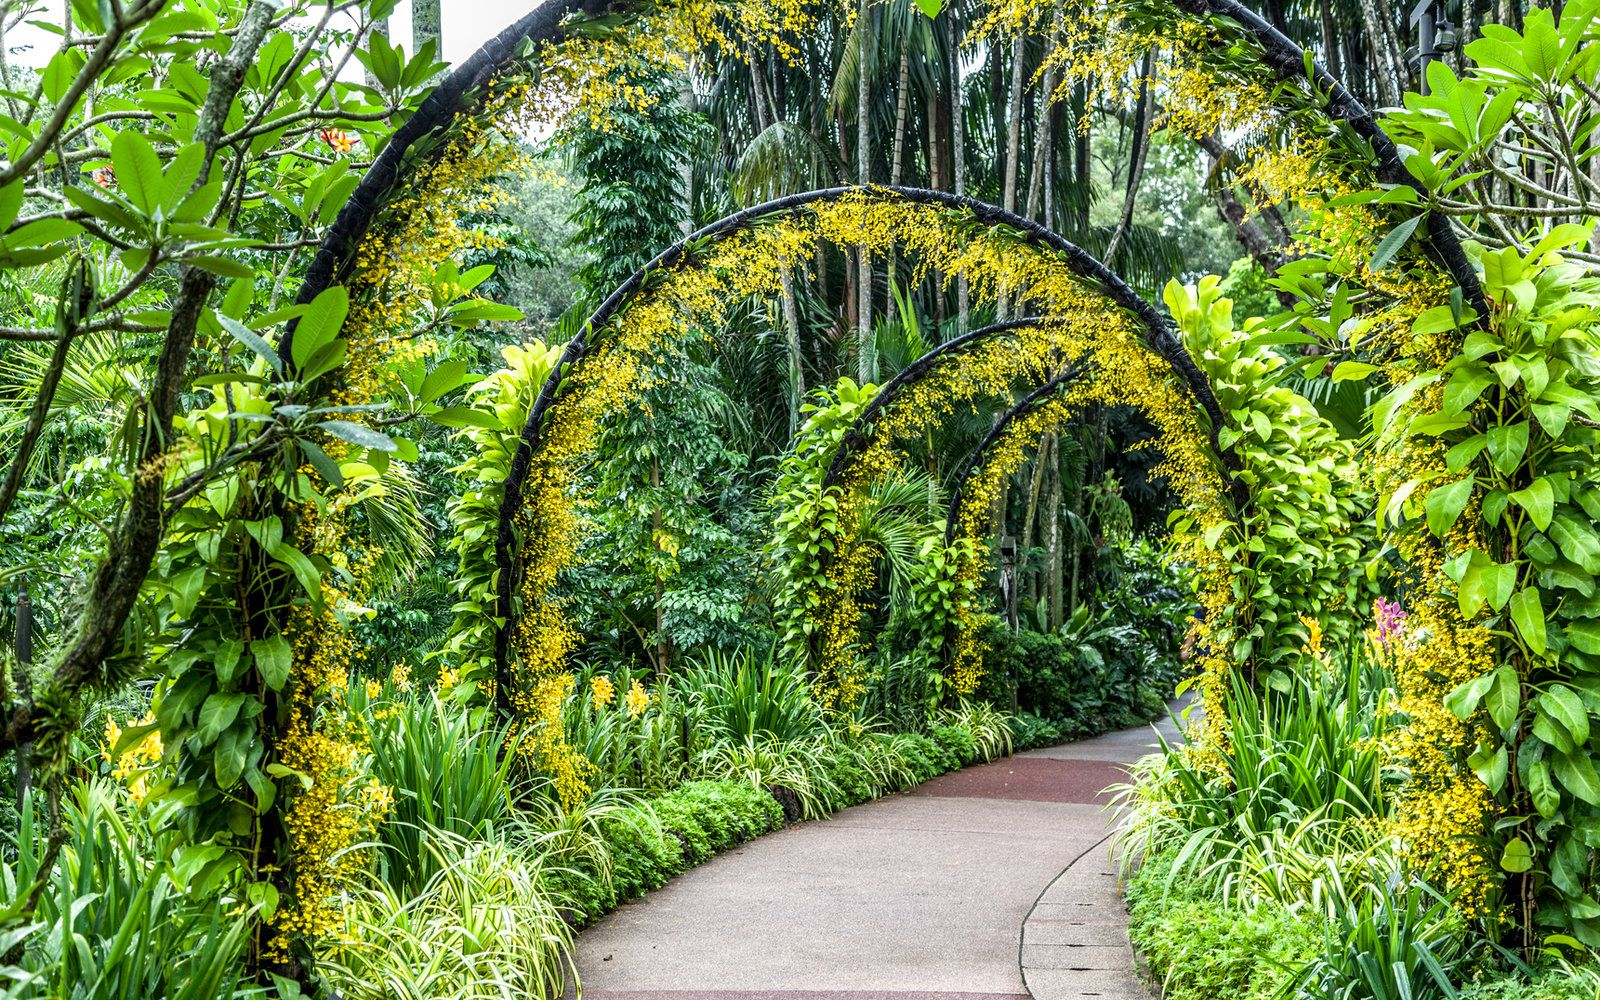 Singapore Botanic Gardens | Any Traveler Looking To Be Immersed In Nature  While Abroad Would Do Well To Look Up The Nearest Botanical Garden. Read On.